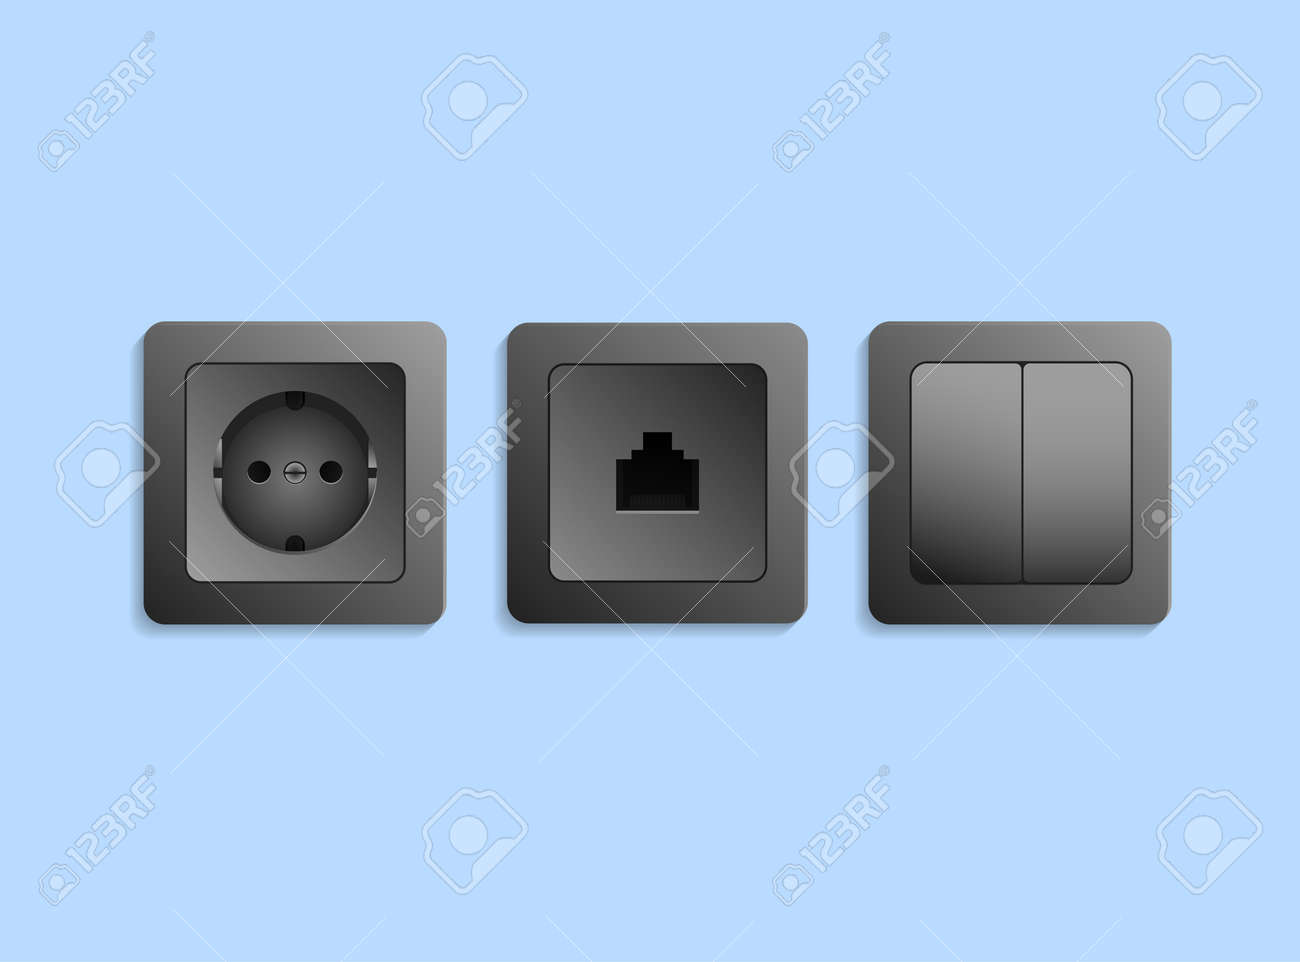 Different Realistic Black Electric Devices Power Socket Network How To Install Electrical Outlet Light Switch And On Blue